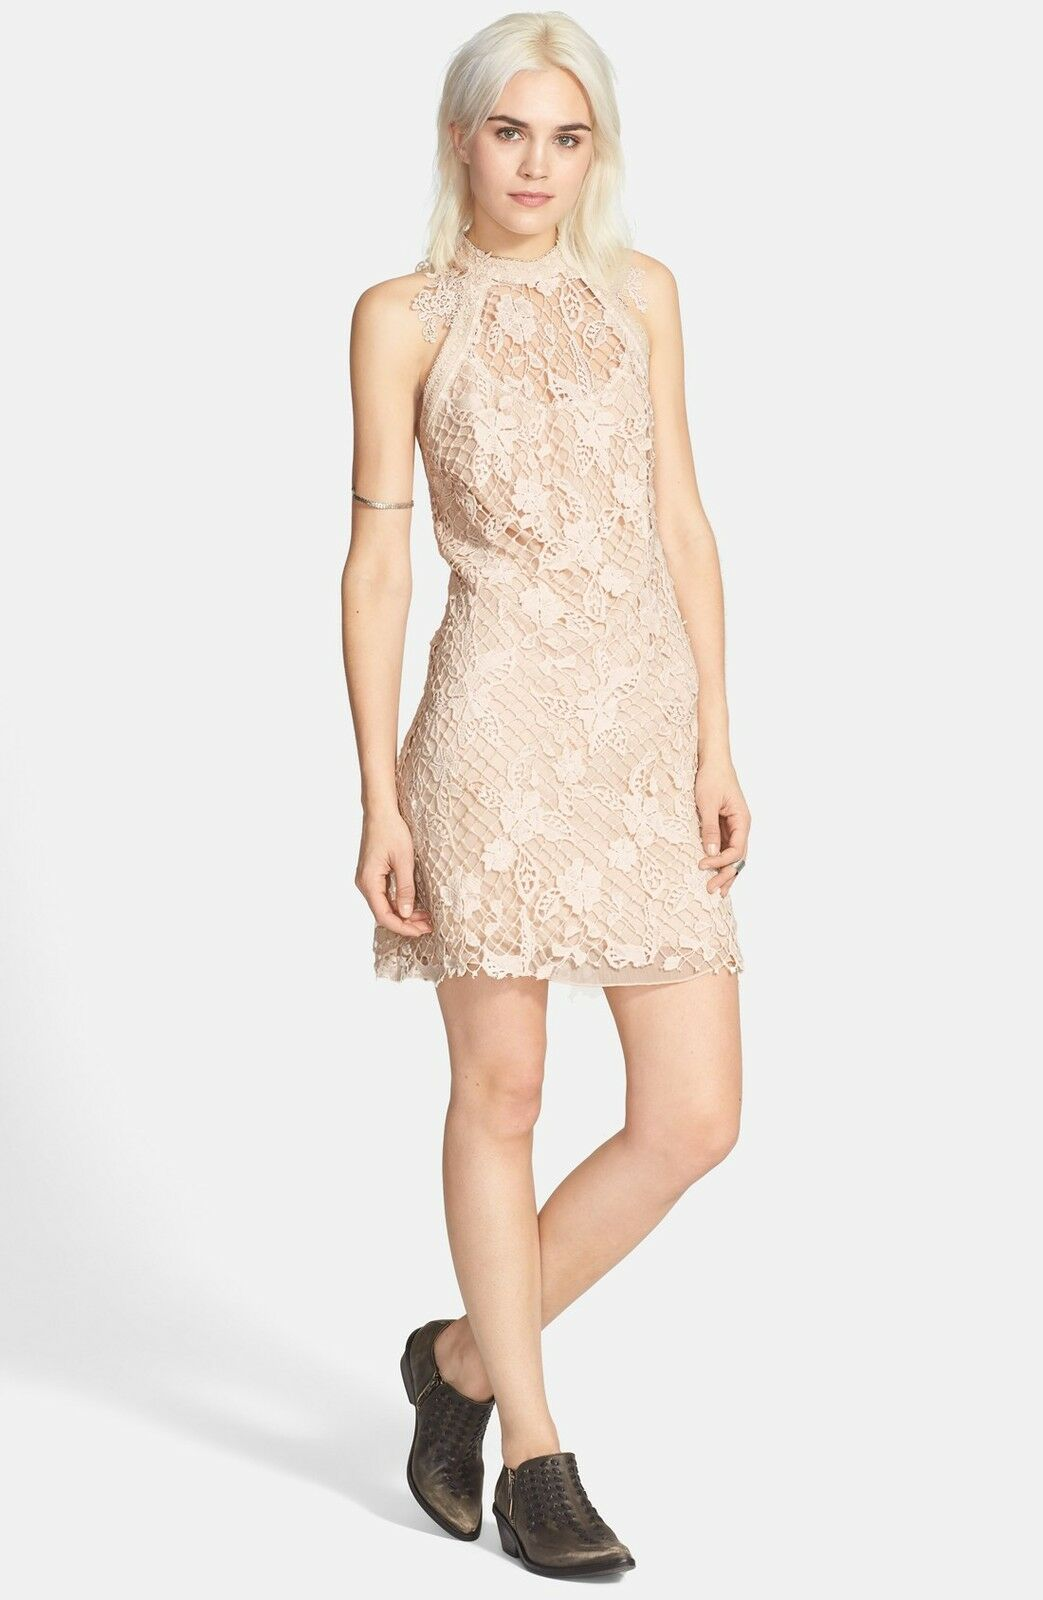 NEW FREE PEOPLE 'Snowdrop' Lace Overlay Trapeze DRESS SIZE XS  250 SOFT SHELL